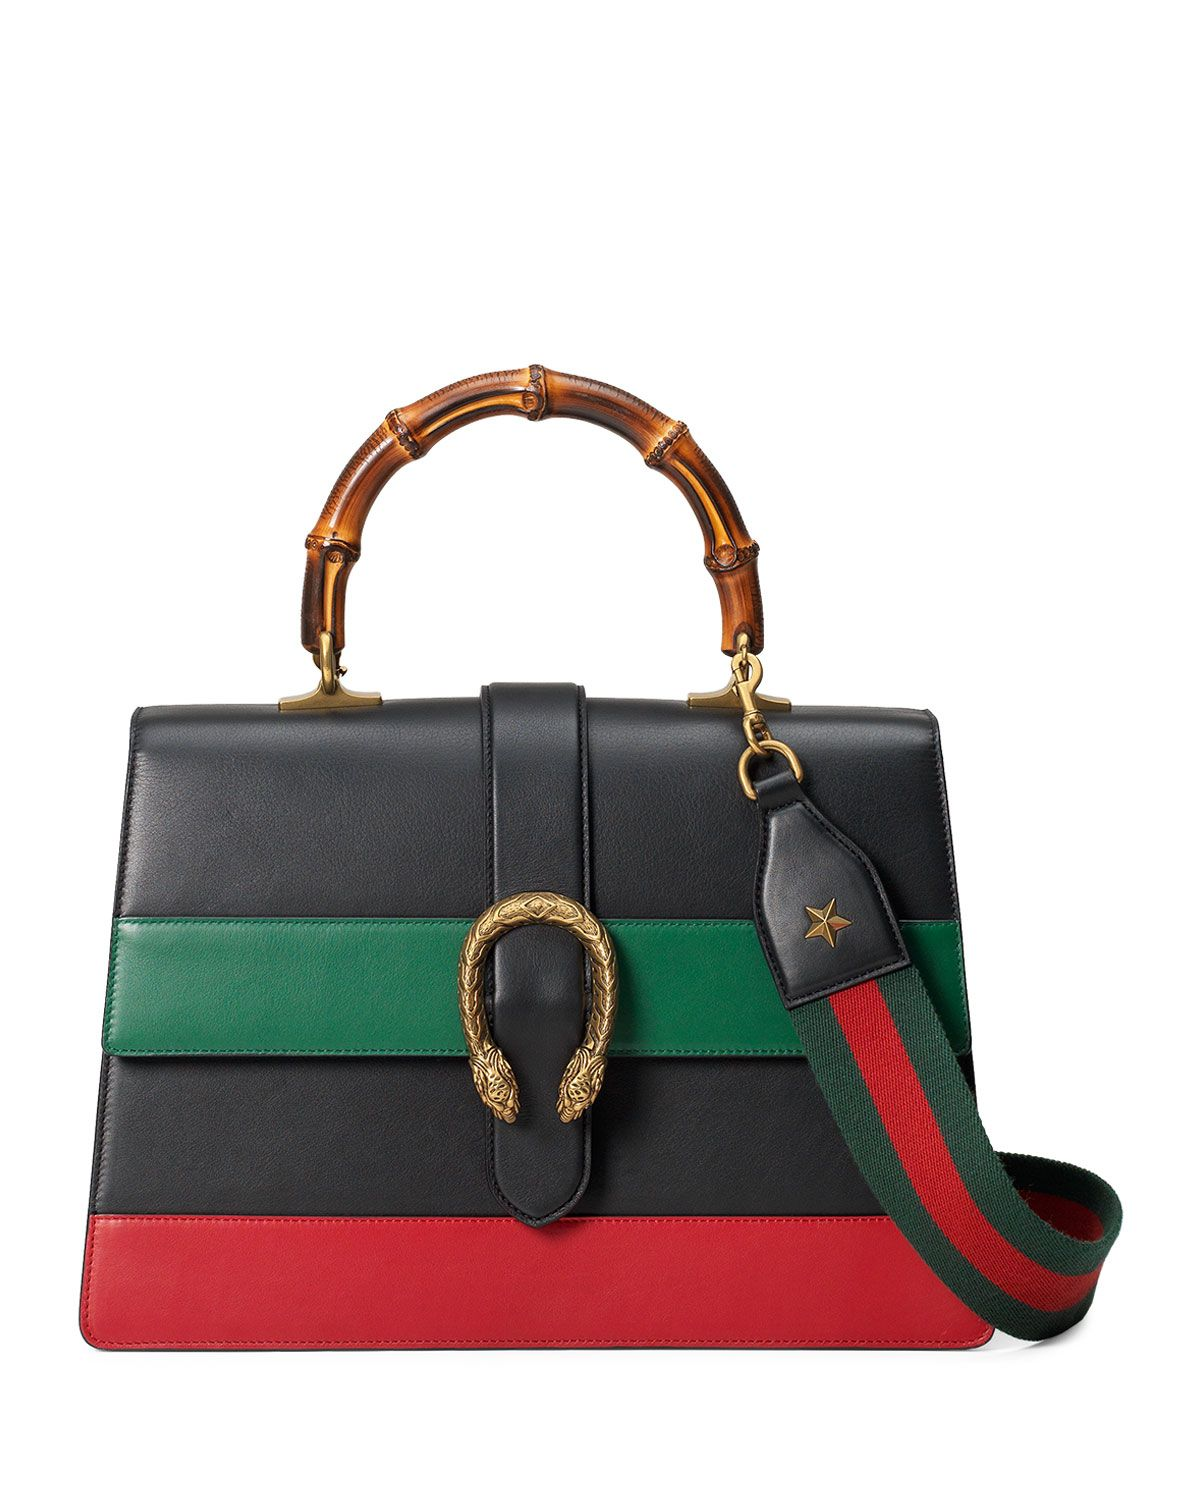 Gucci Dionysus Striped Bamboo Top-Handle Bag, Black Green Red ... b17893e6d0